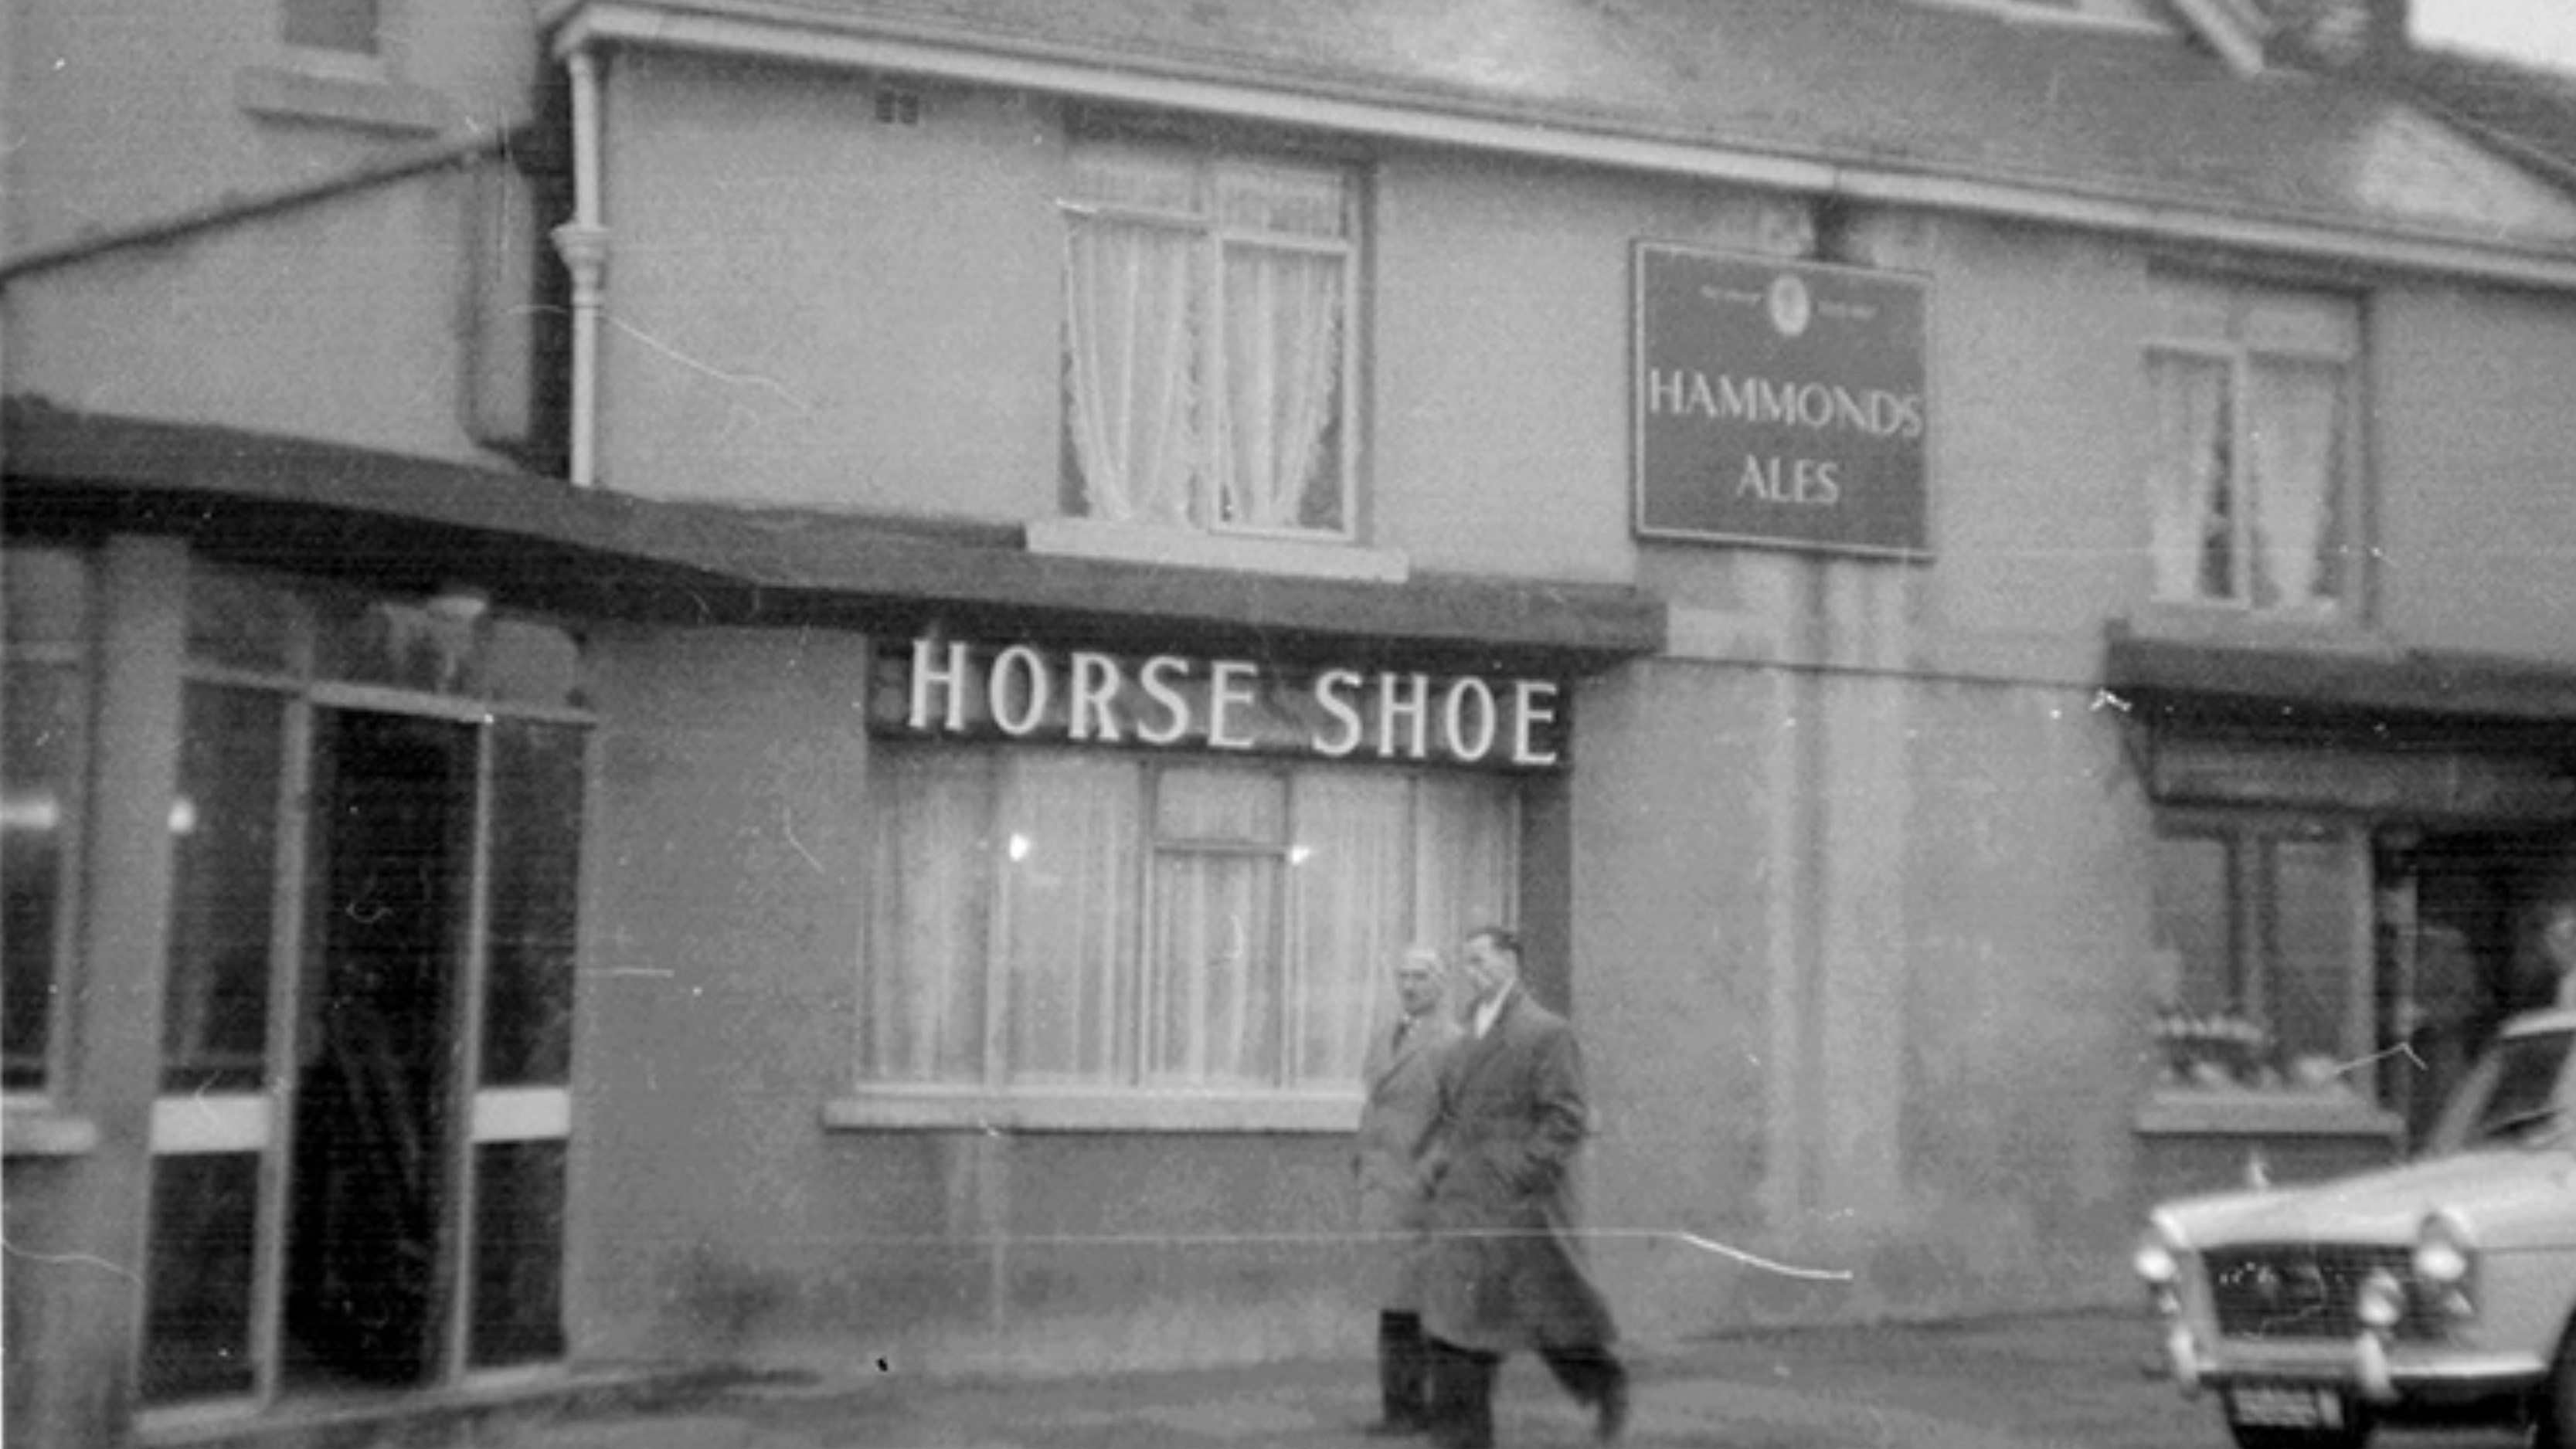 The Horse Shoe Pub on Bellhouse Road, Shiregreen